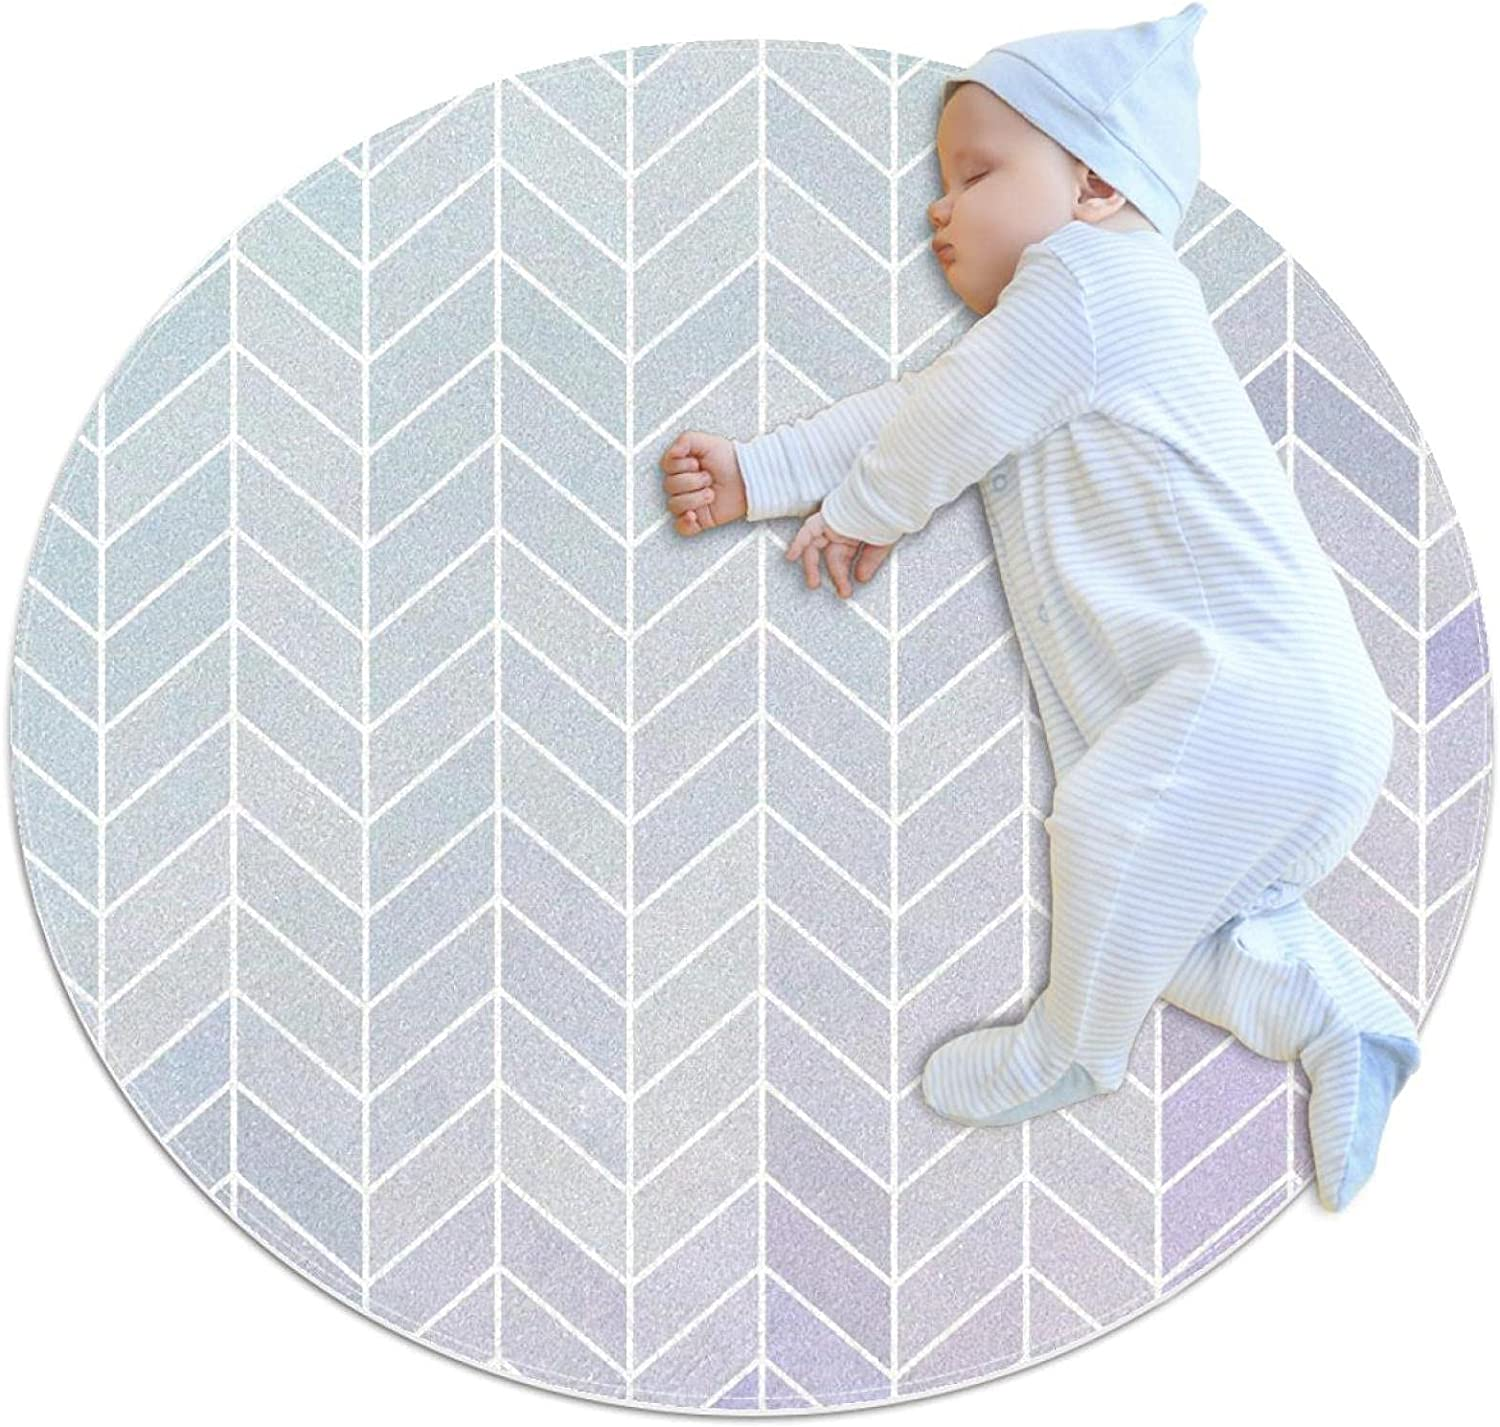 Picture of Rhombus Max 76% OFF White Round Kids Super intense SALE Polyester K Nursery Rug